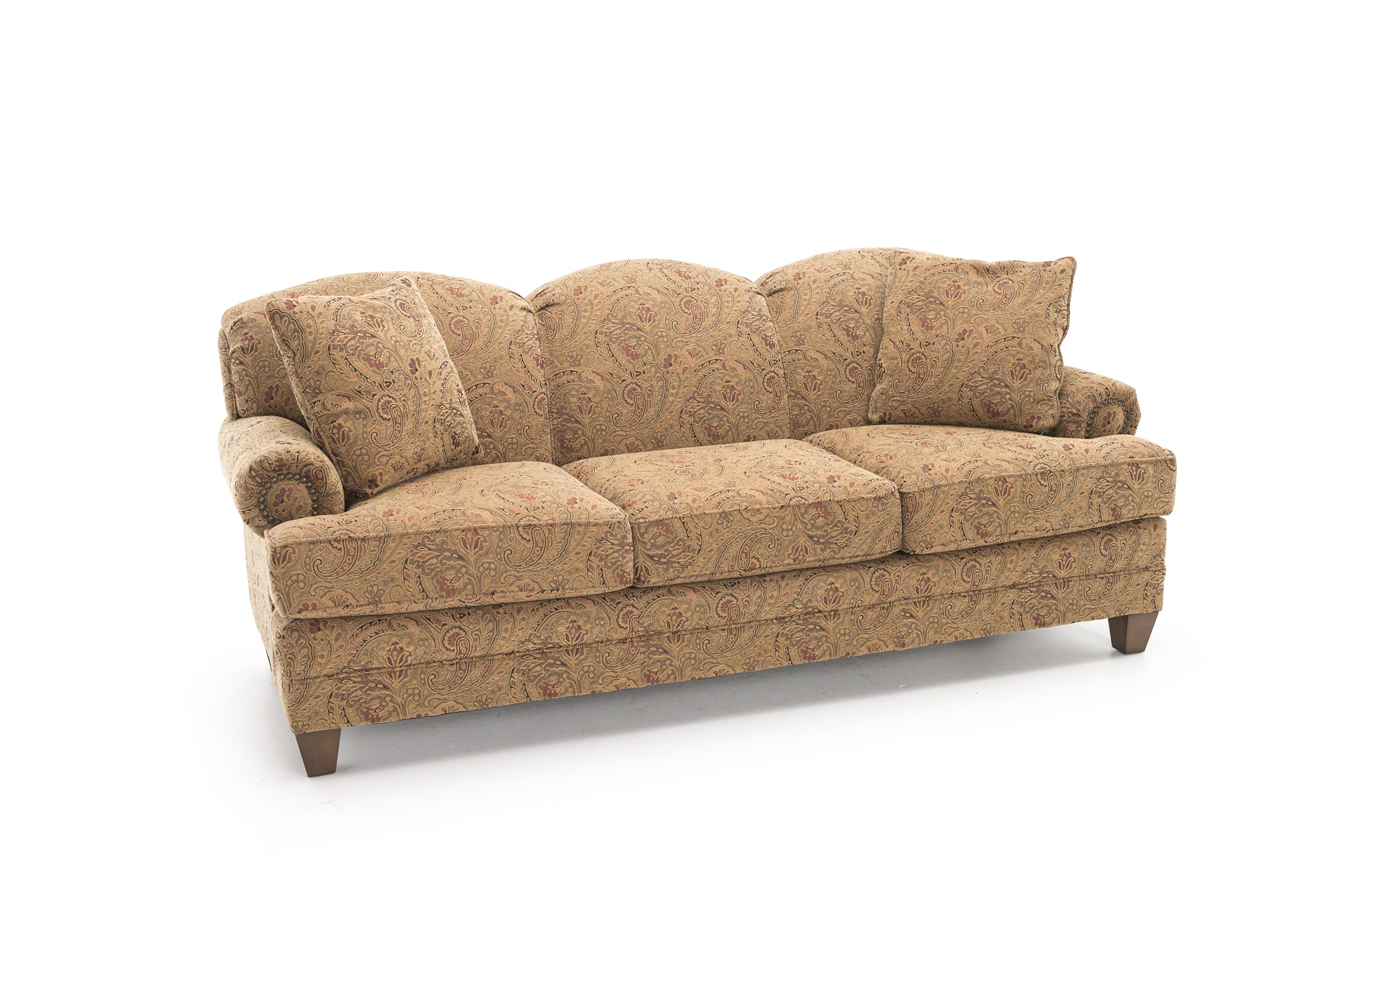 Anniston Sofa | Steinhafels Inside Callie Sofa Chairs (Image 1 of 20)